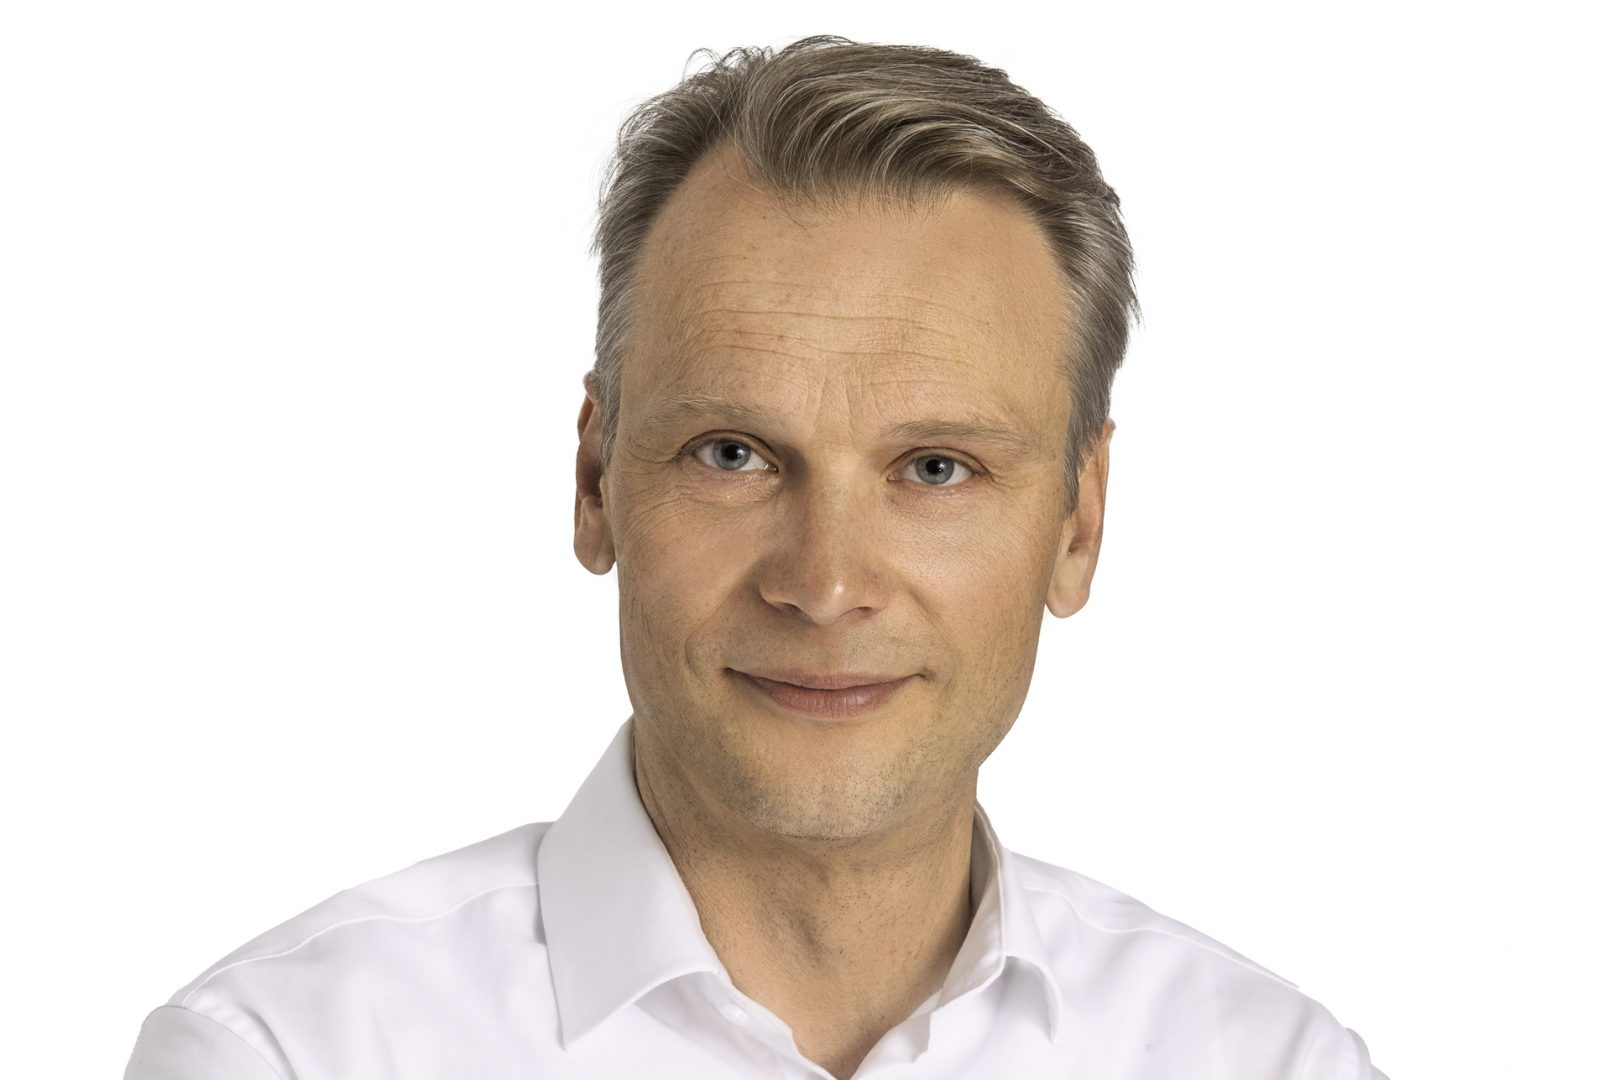 Antti Vihavainen, Co-Founder, Puro.earth